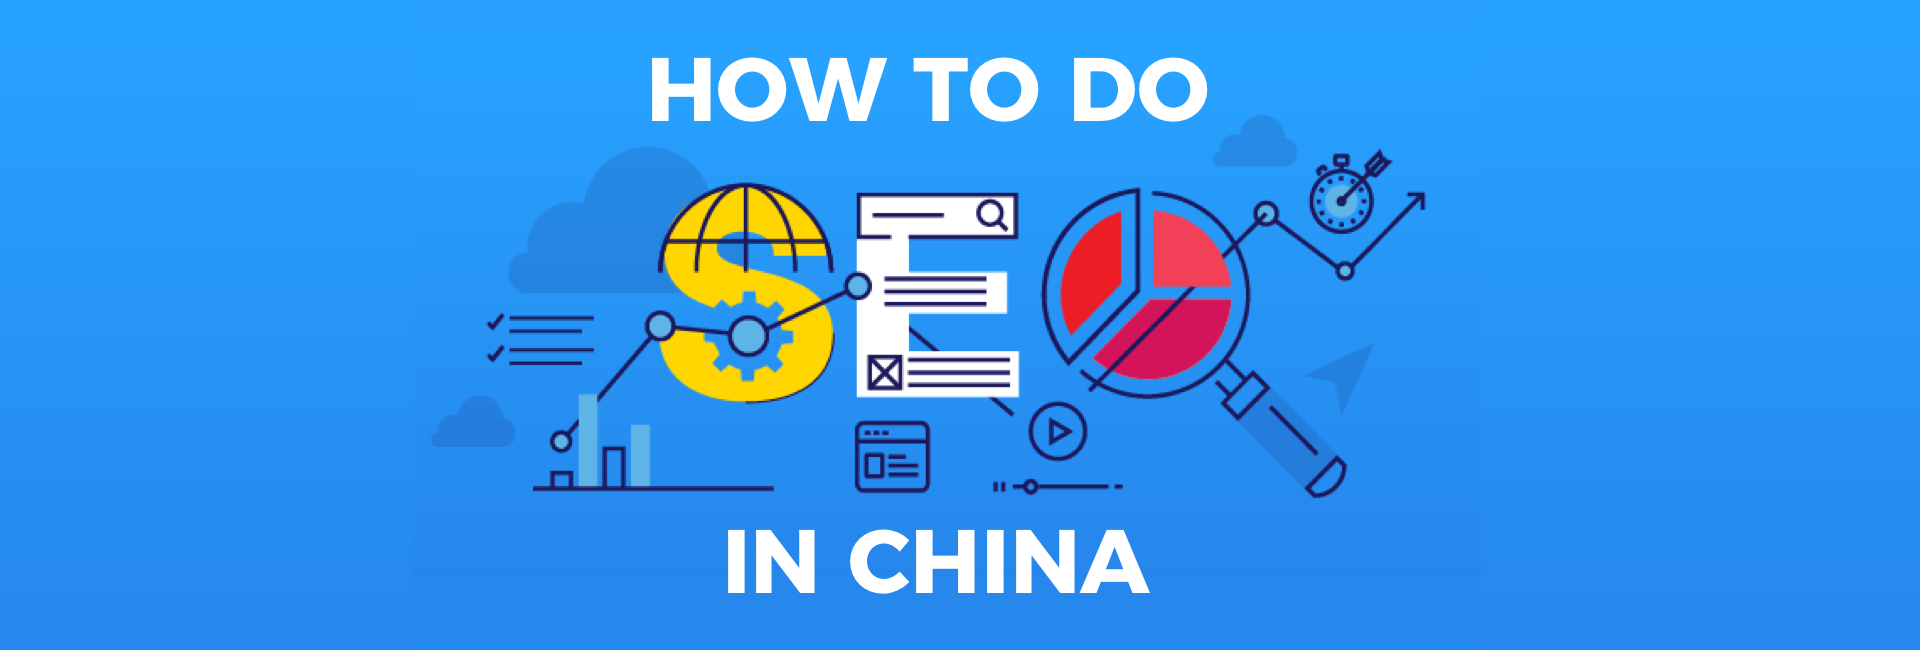 How To Do SEO In China with Baidu and Google